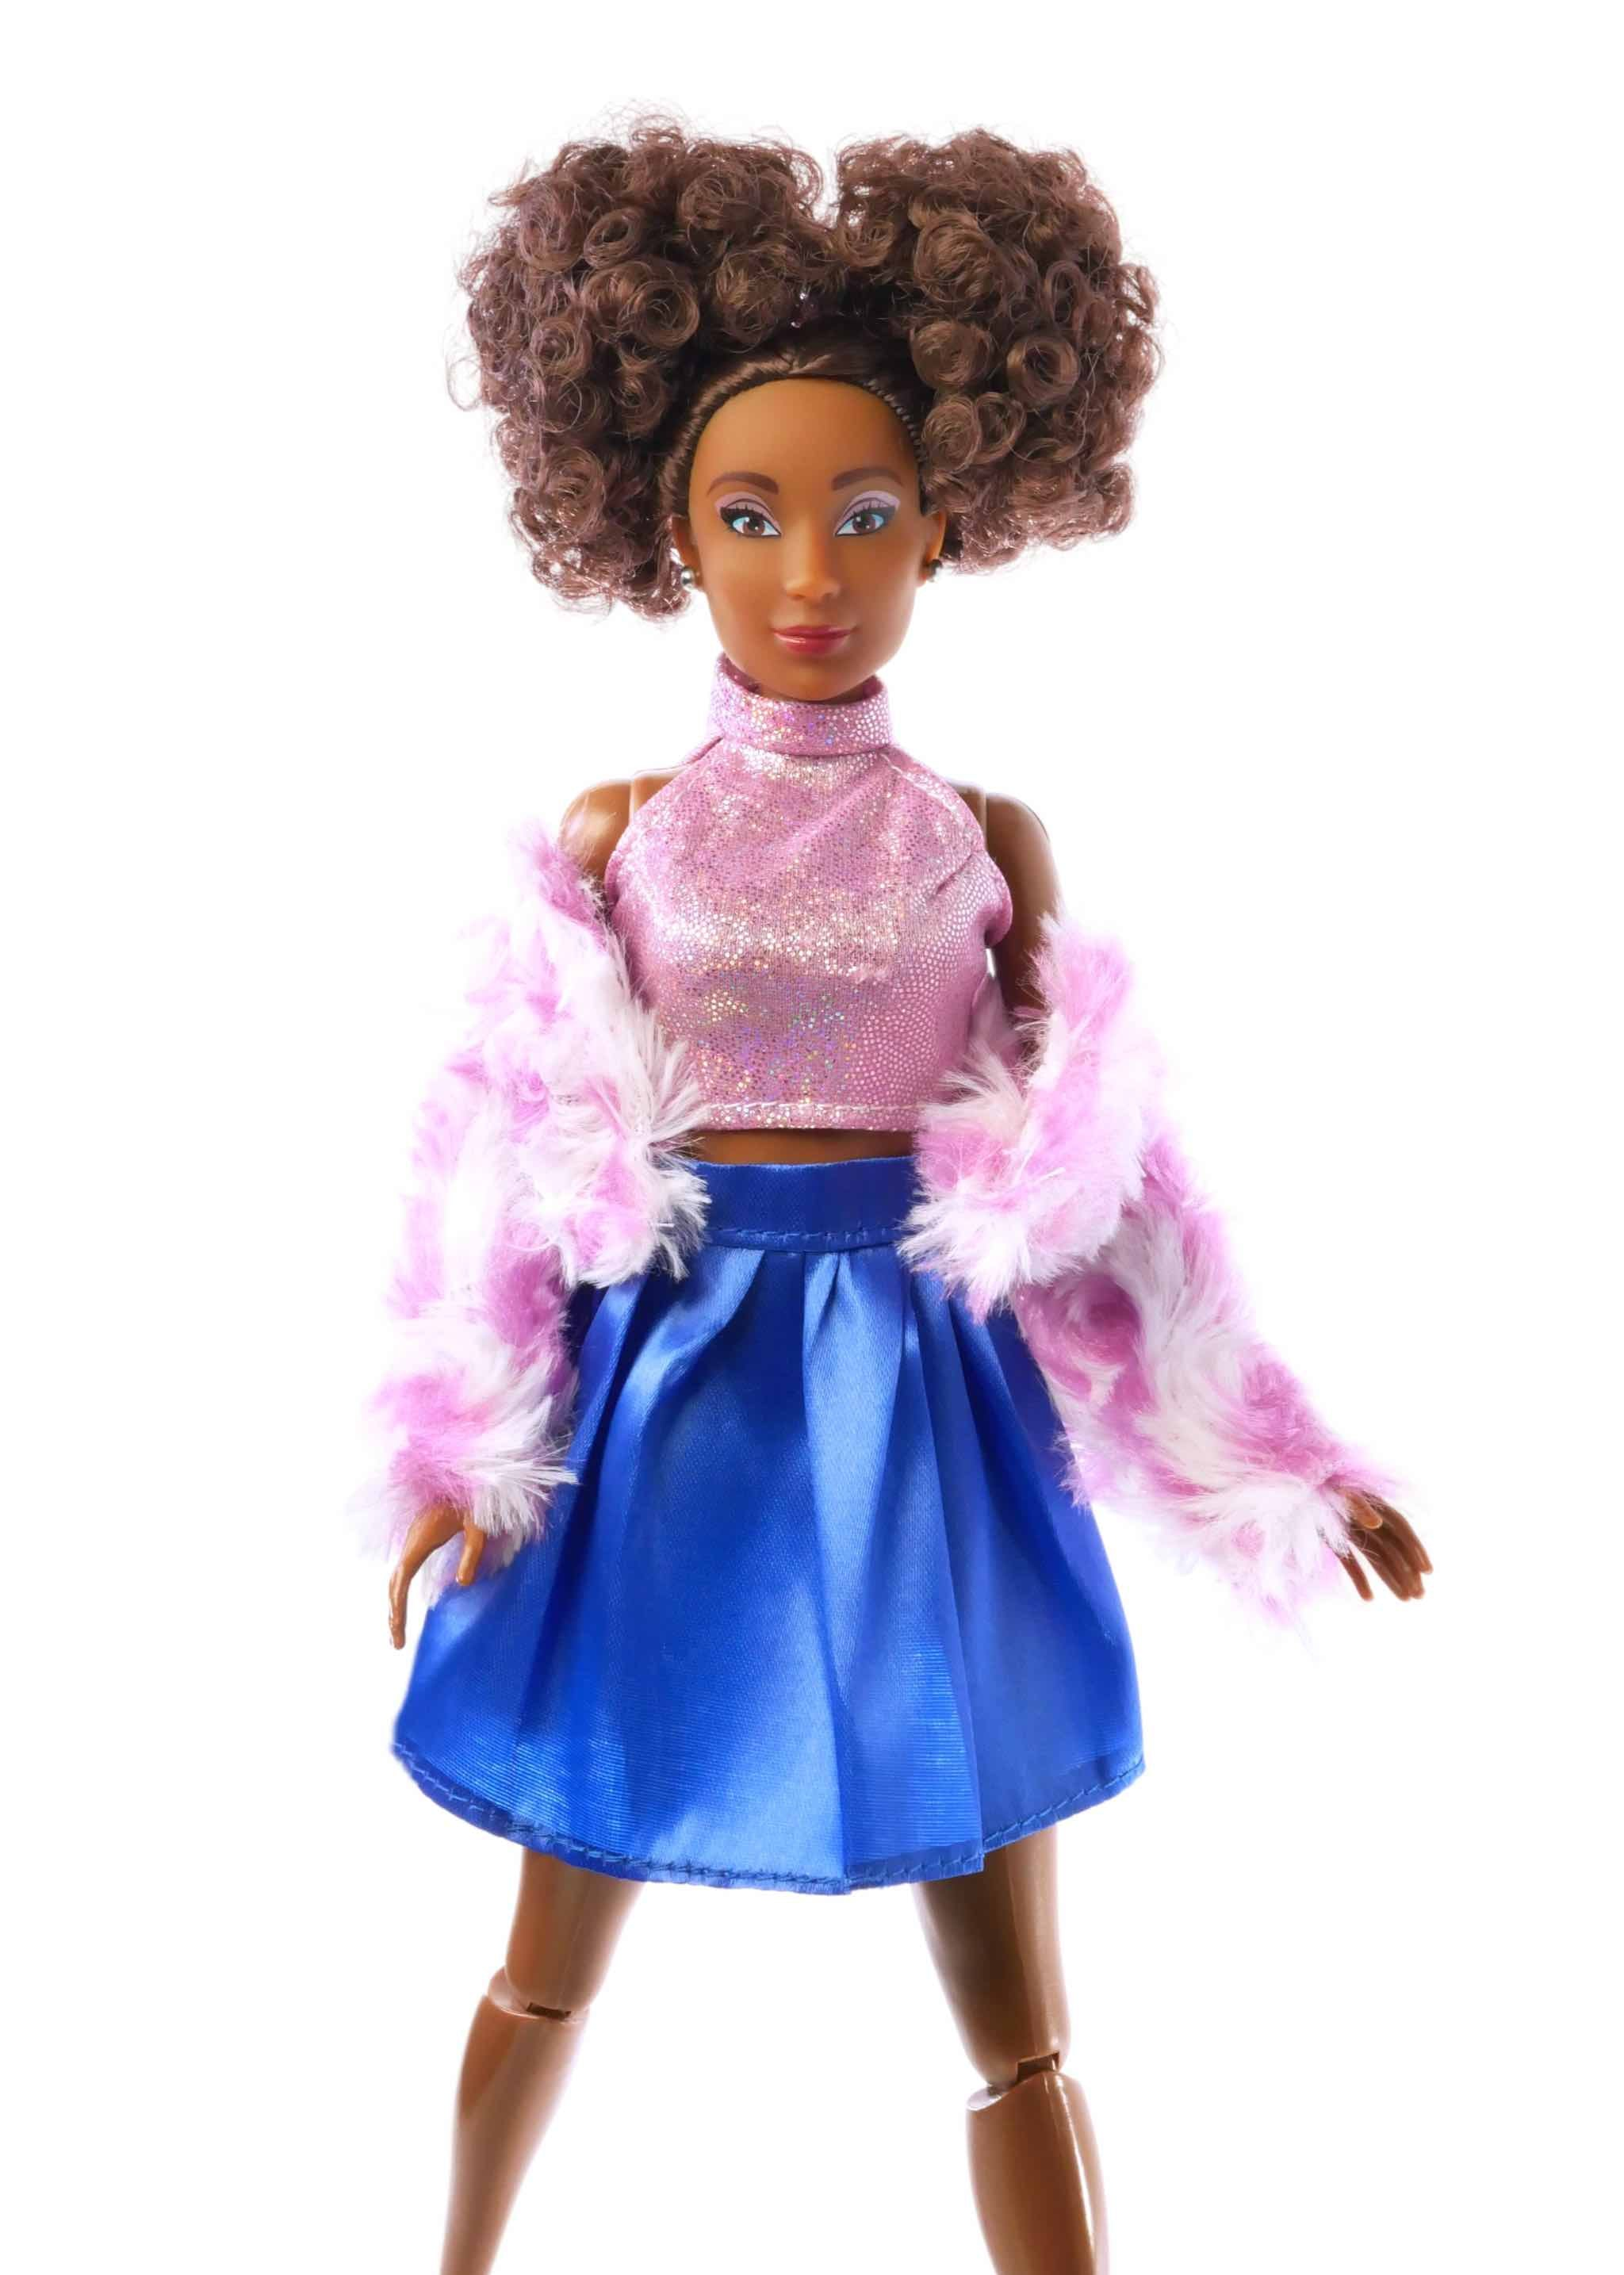 fashion doll brown curly hair with pink top, pink scarf, and blue skirt,